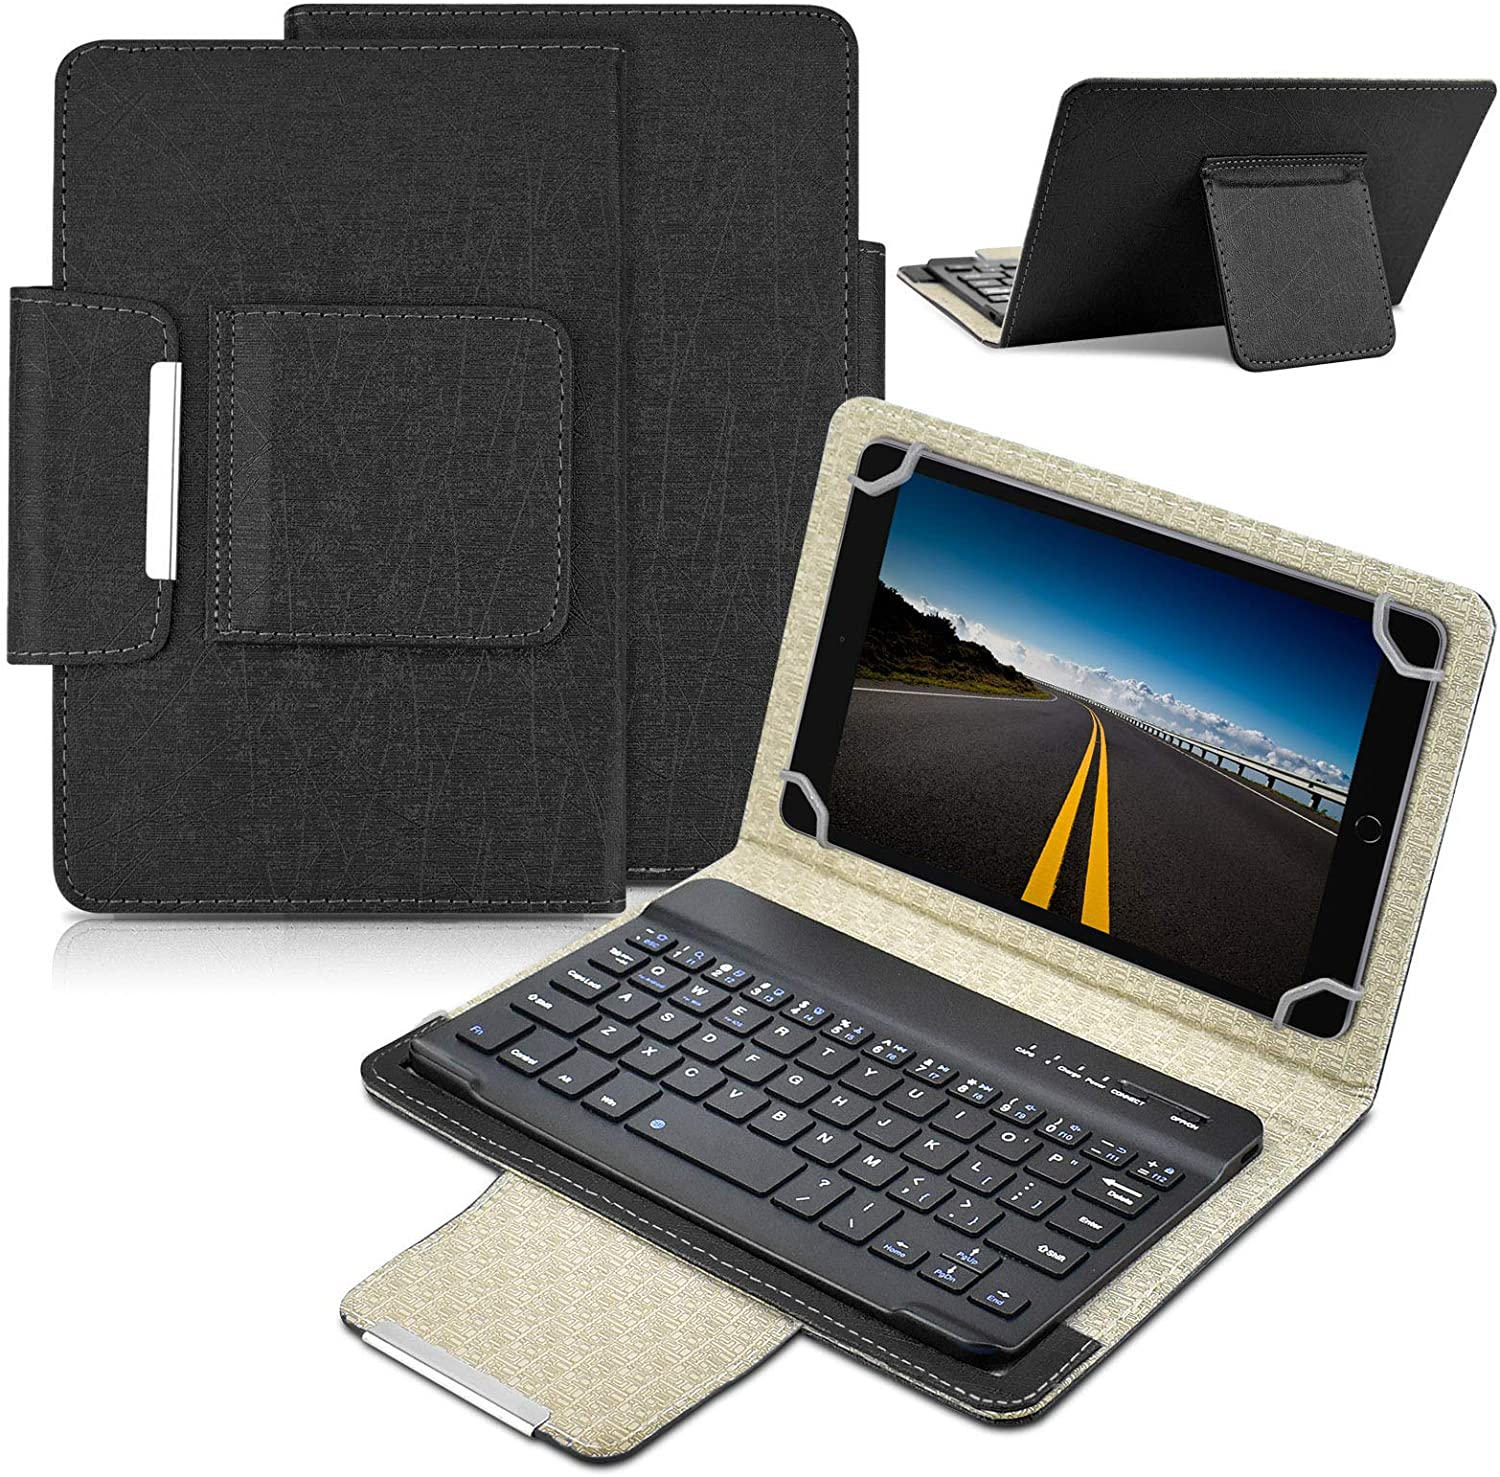 Universal 7 inch Tablet Keyboard Case, 【DETUOSI】 Wireless Bluetooth Removable Keyboard + Folio PU Leather Cover + Stand, Travel Portable Leather Sleeve for iOS/Android/Windows 7.0'' Tablet #Black